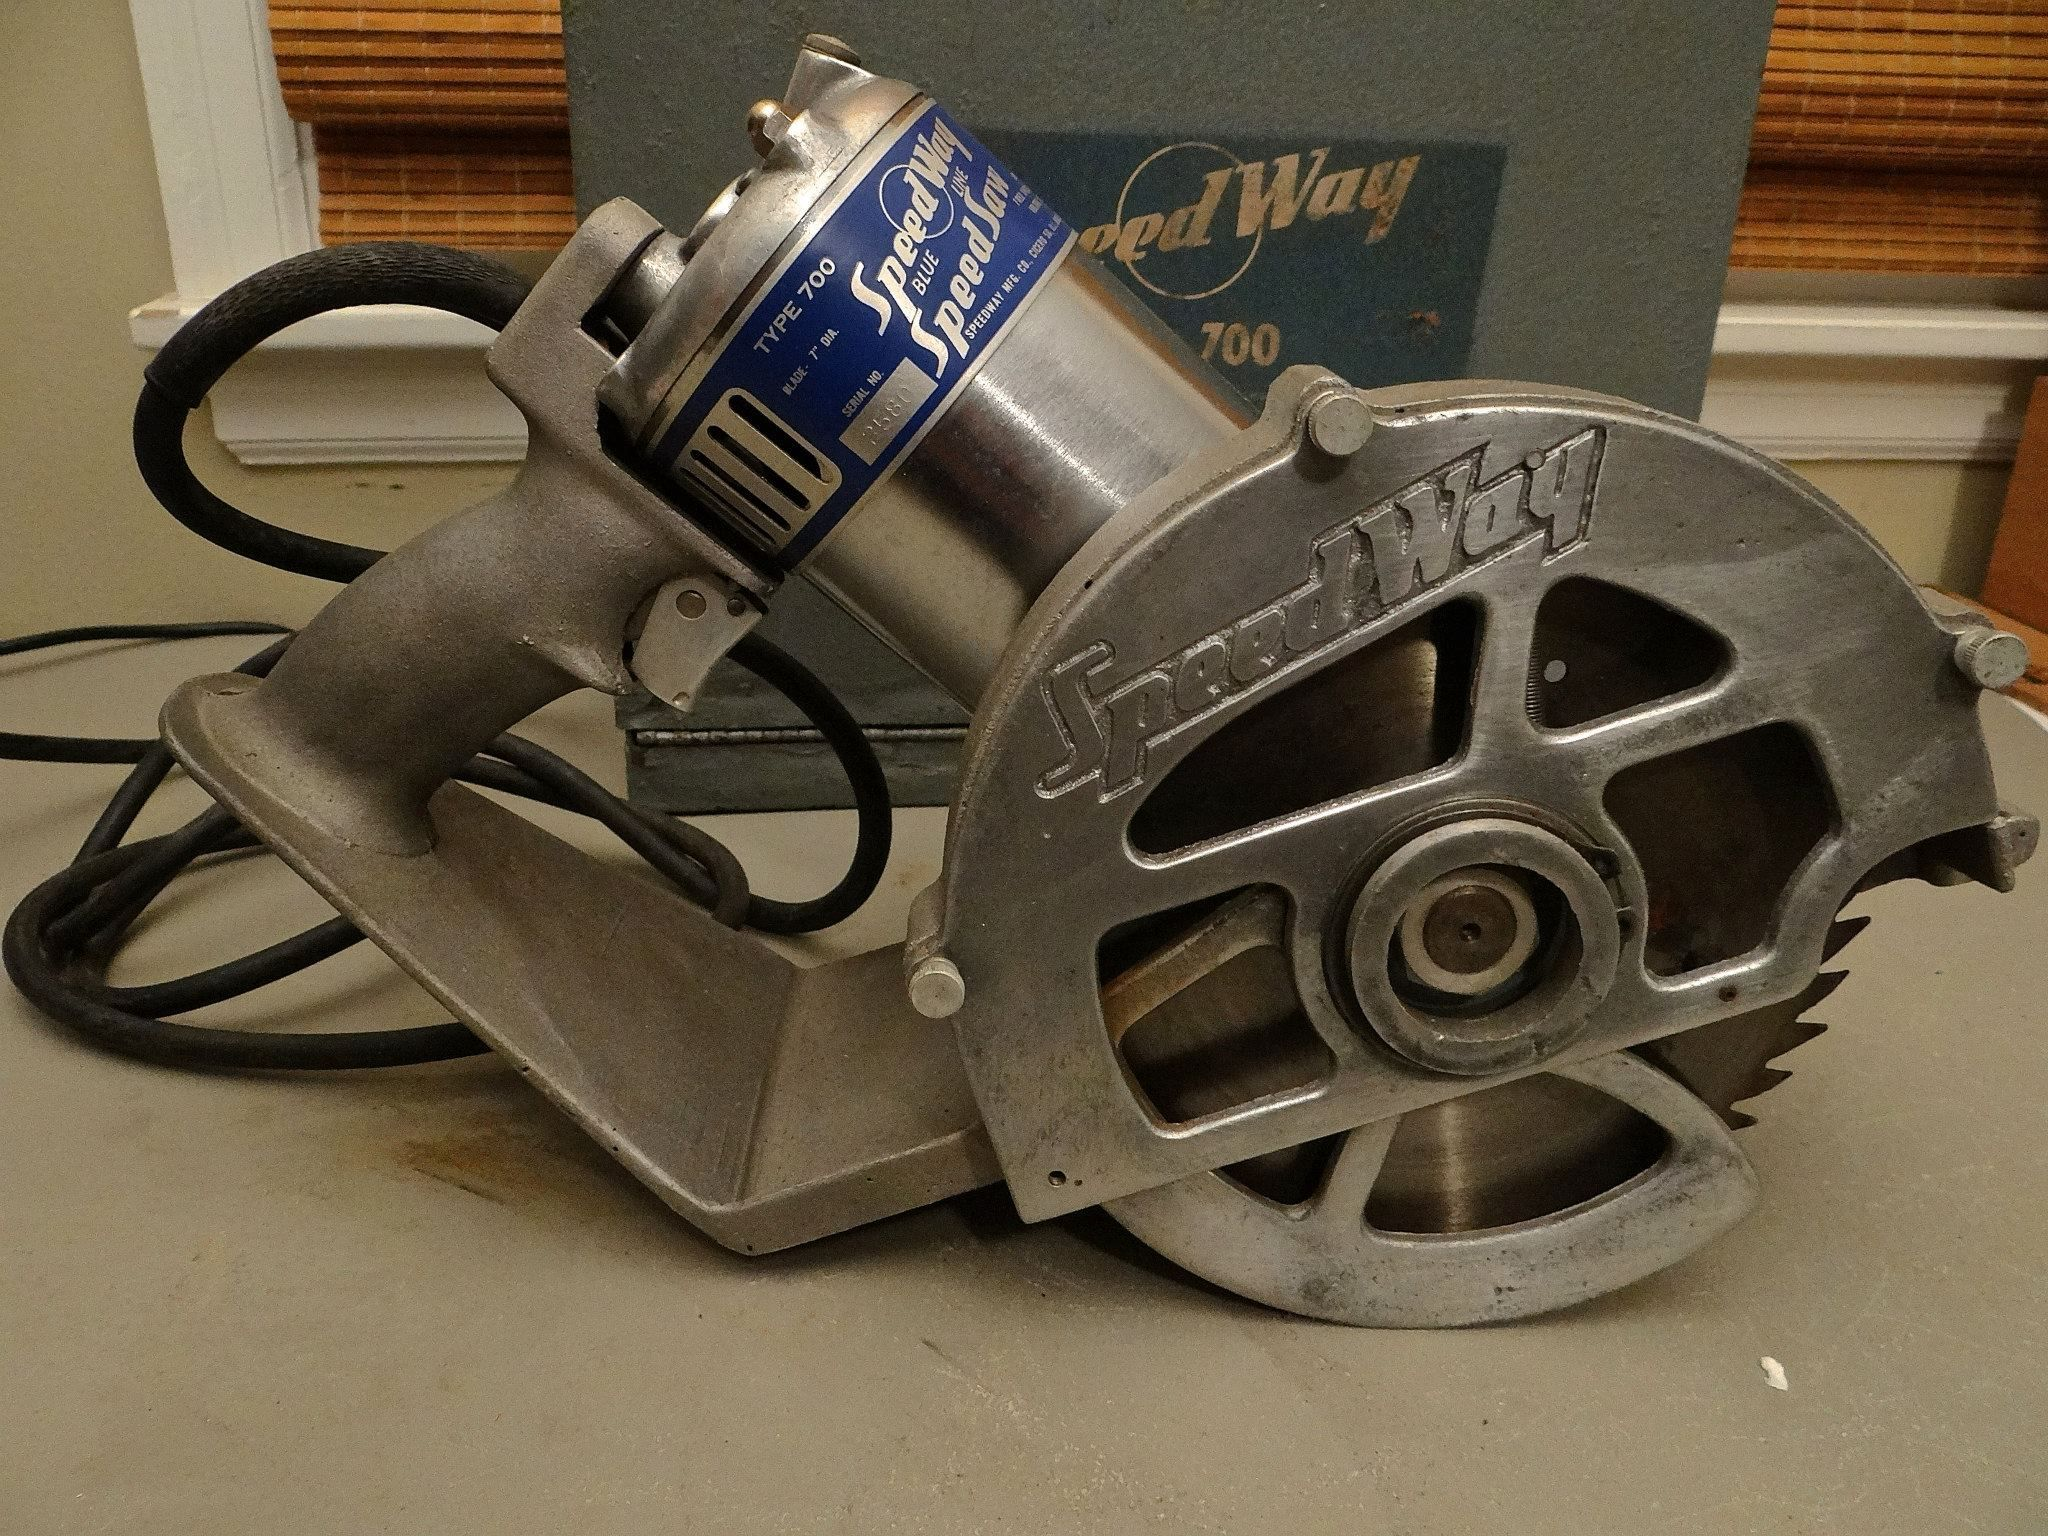 1930s Speedway Circular Saw Vintage Tools Circular Saw Woodworking